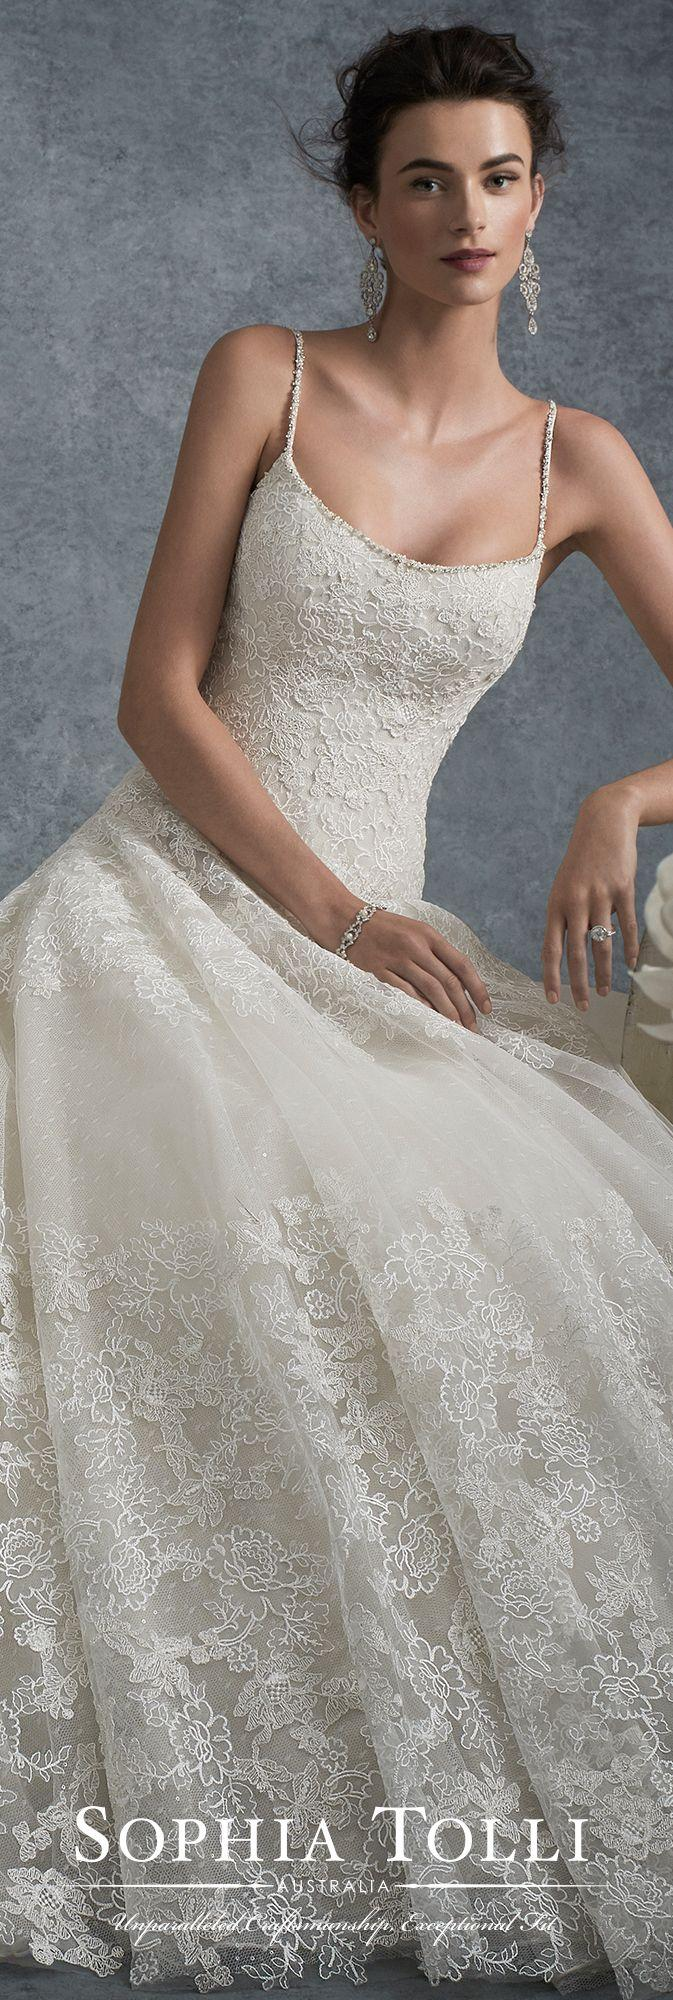 Свадьба - Spaghetti Strap Lace And Tulle Ball Gown Wedding Dress Sophia Tolli Y21743